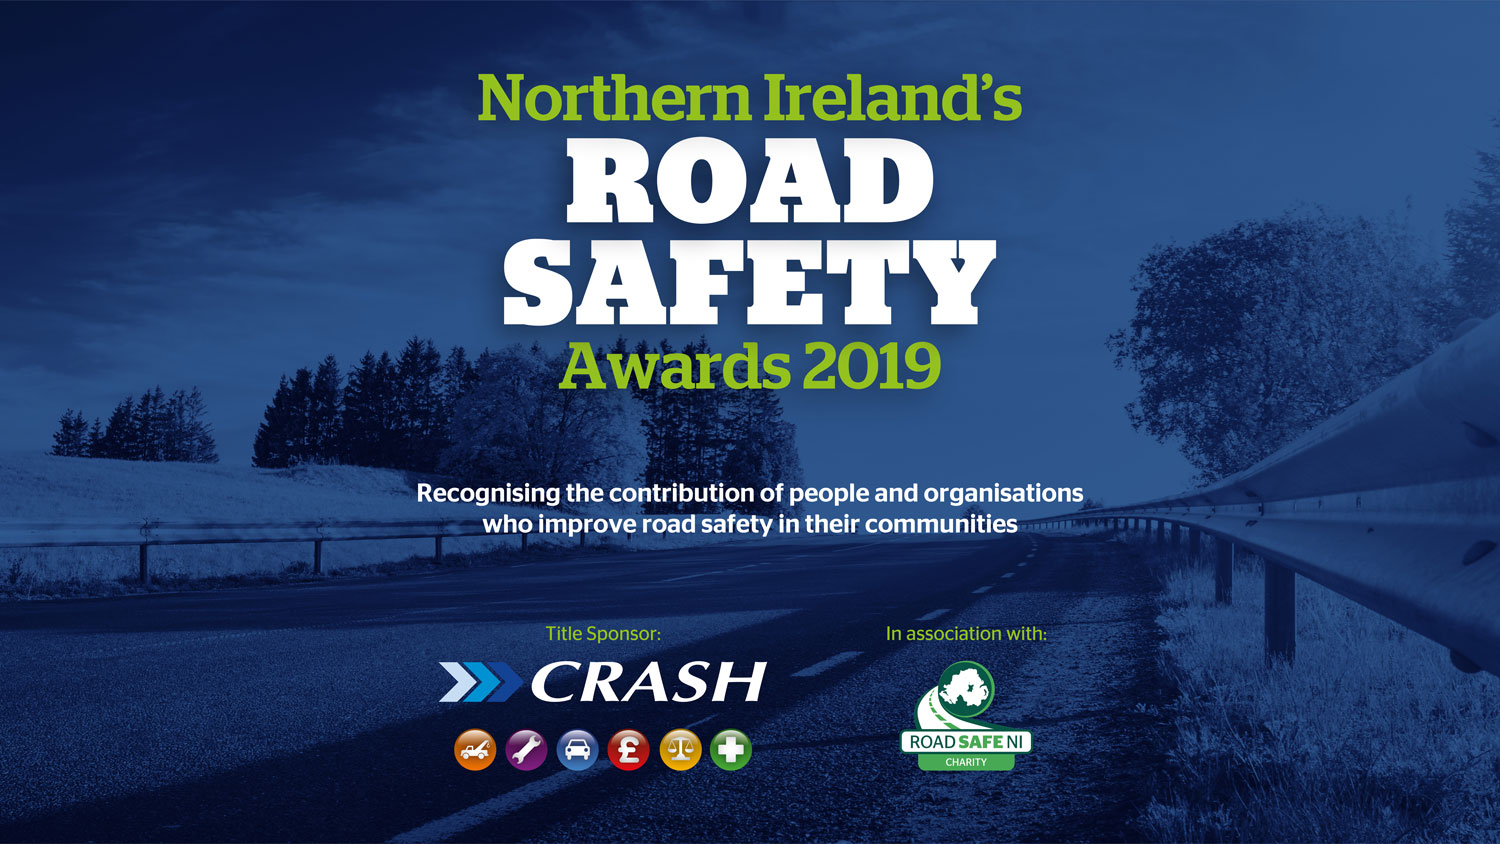 NI Road Safety Awards 2019